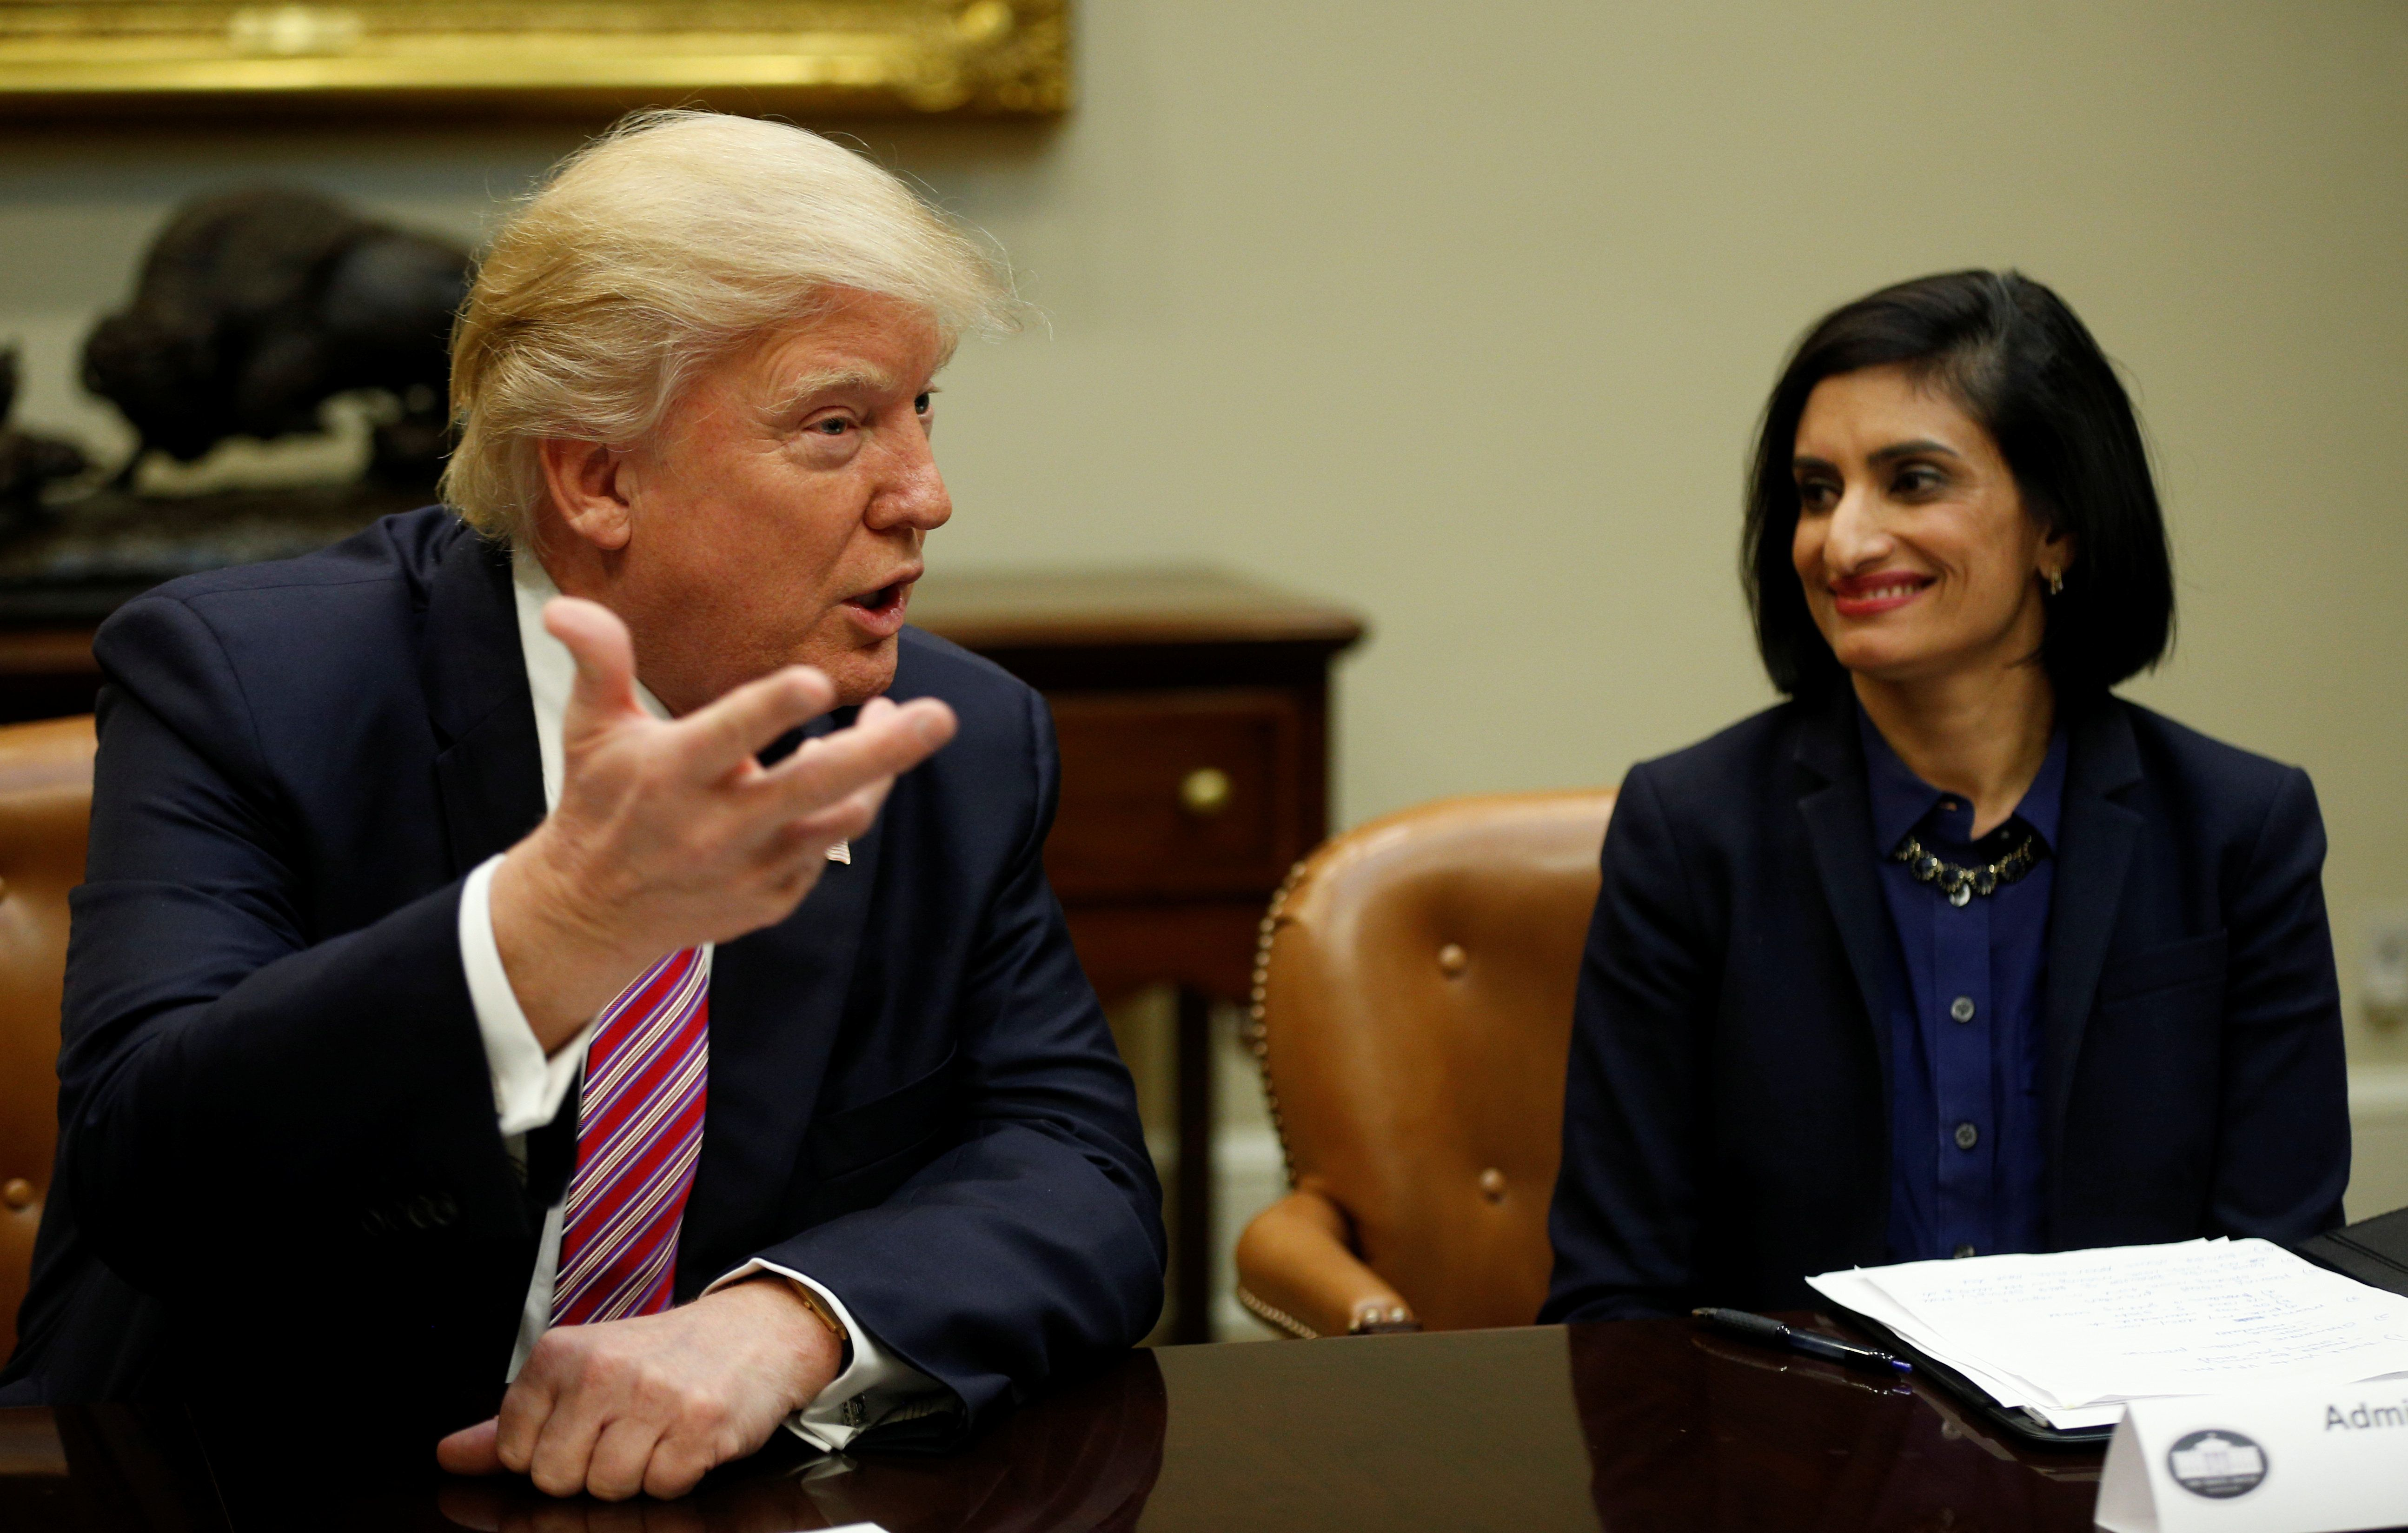 U.S. President Donald Trump attends the Women in Healthcare panel hosted by Seema Verma (R), Administrator of the Centers for Medicare and Medicaid Services, at the White House in Washington, U.S., March 22, 2017.   REUTERS/Kevin Lamarque